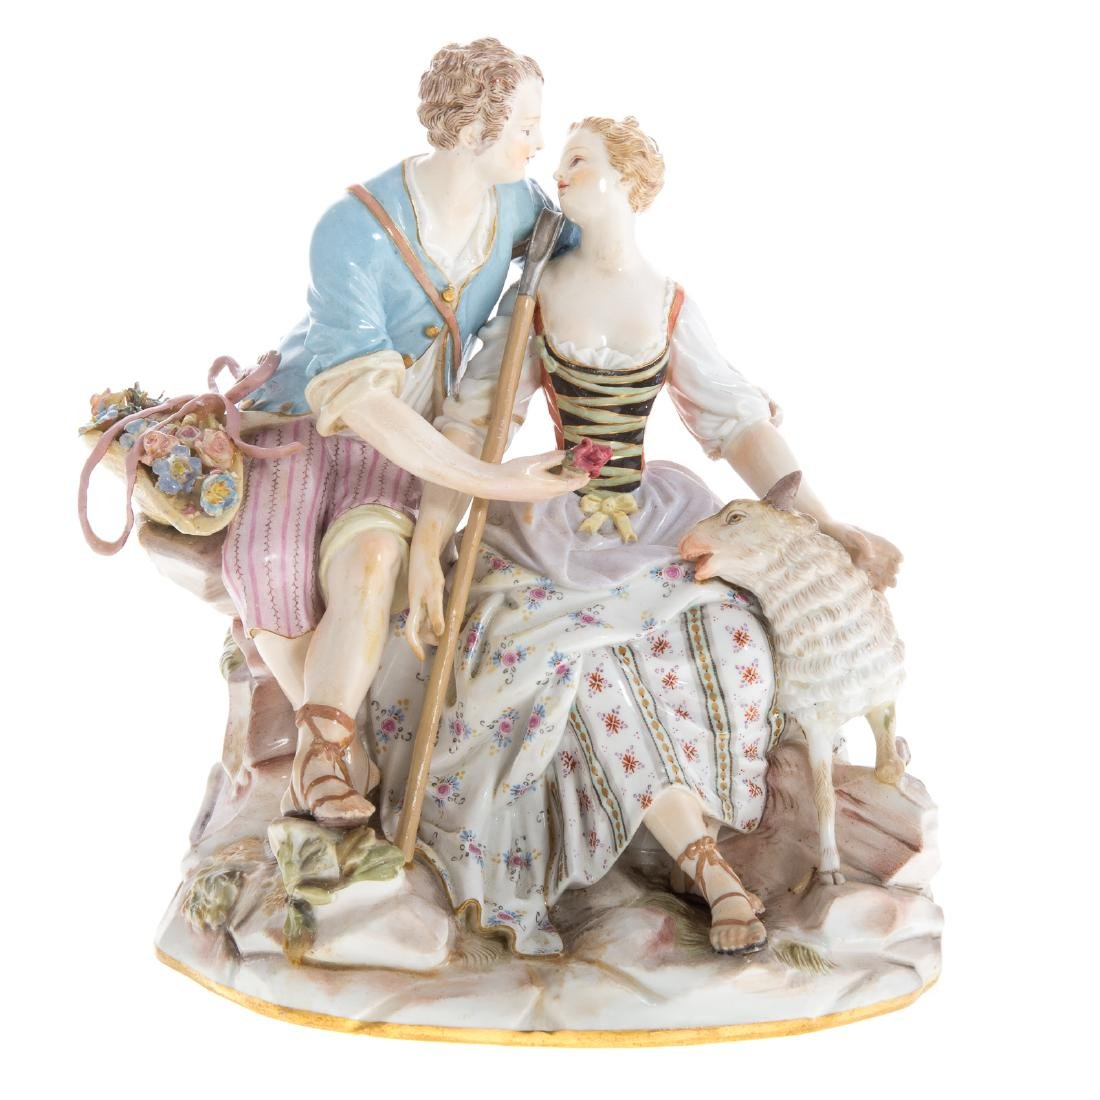 Meissen porcelain pastoral figure group